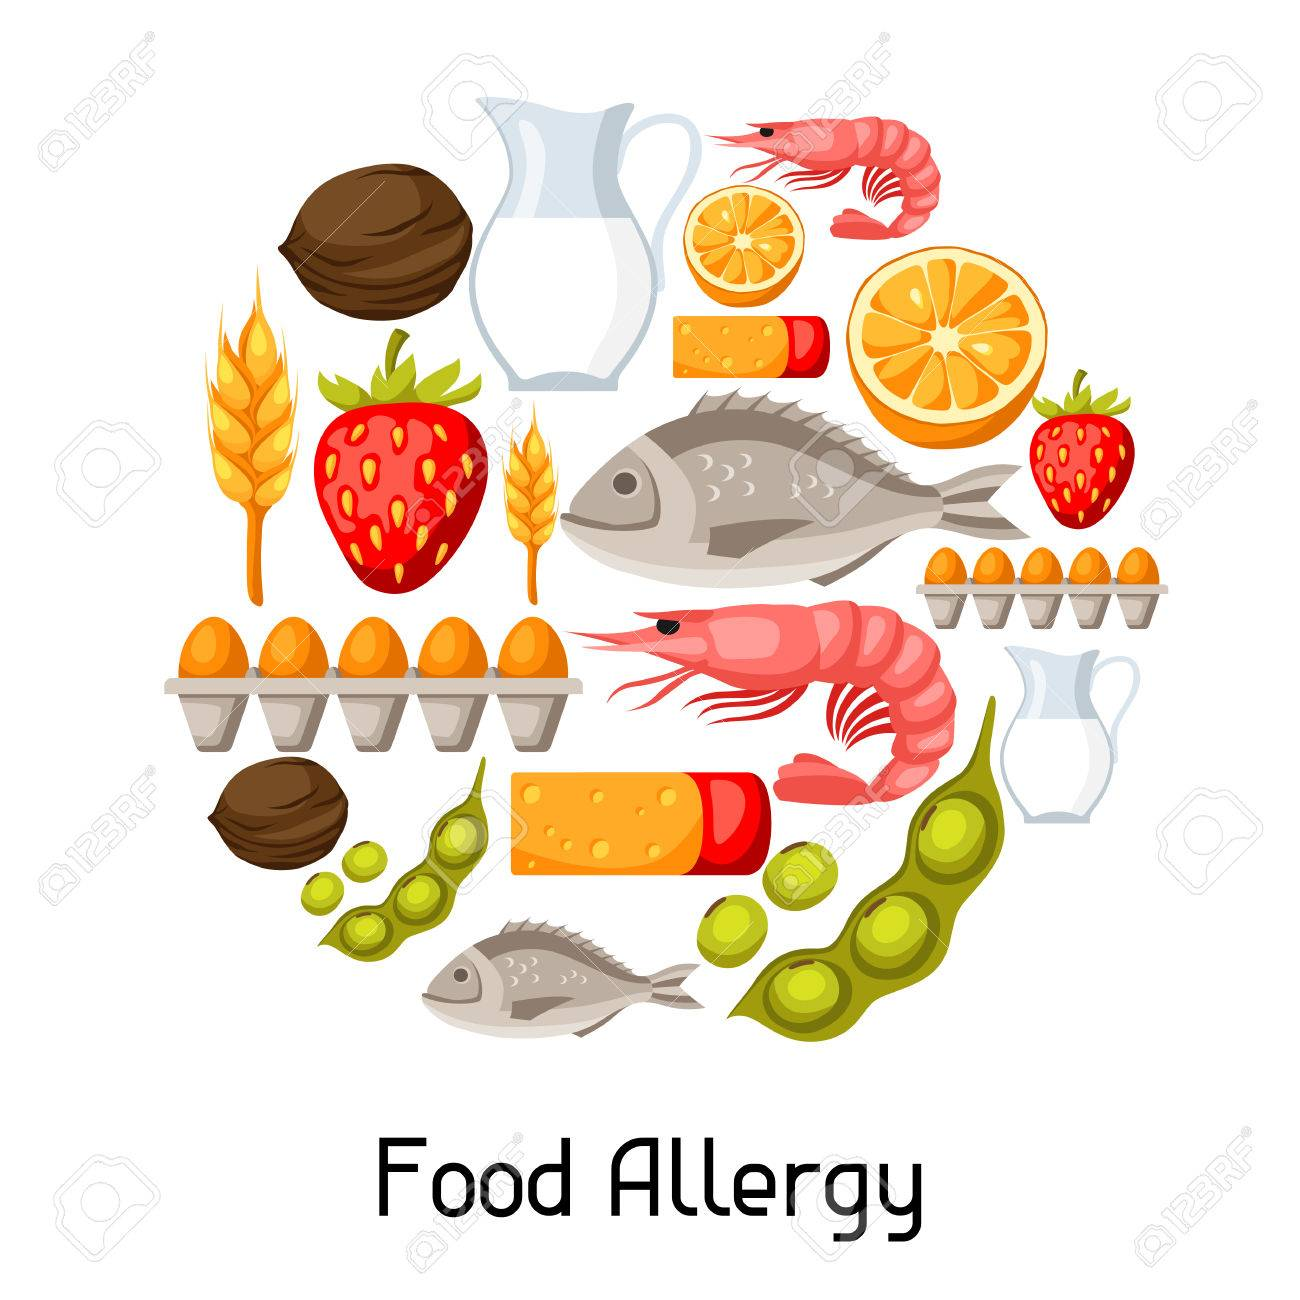 Food allergy background with allergens and symbols..